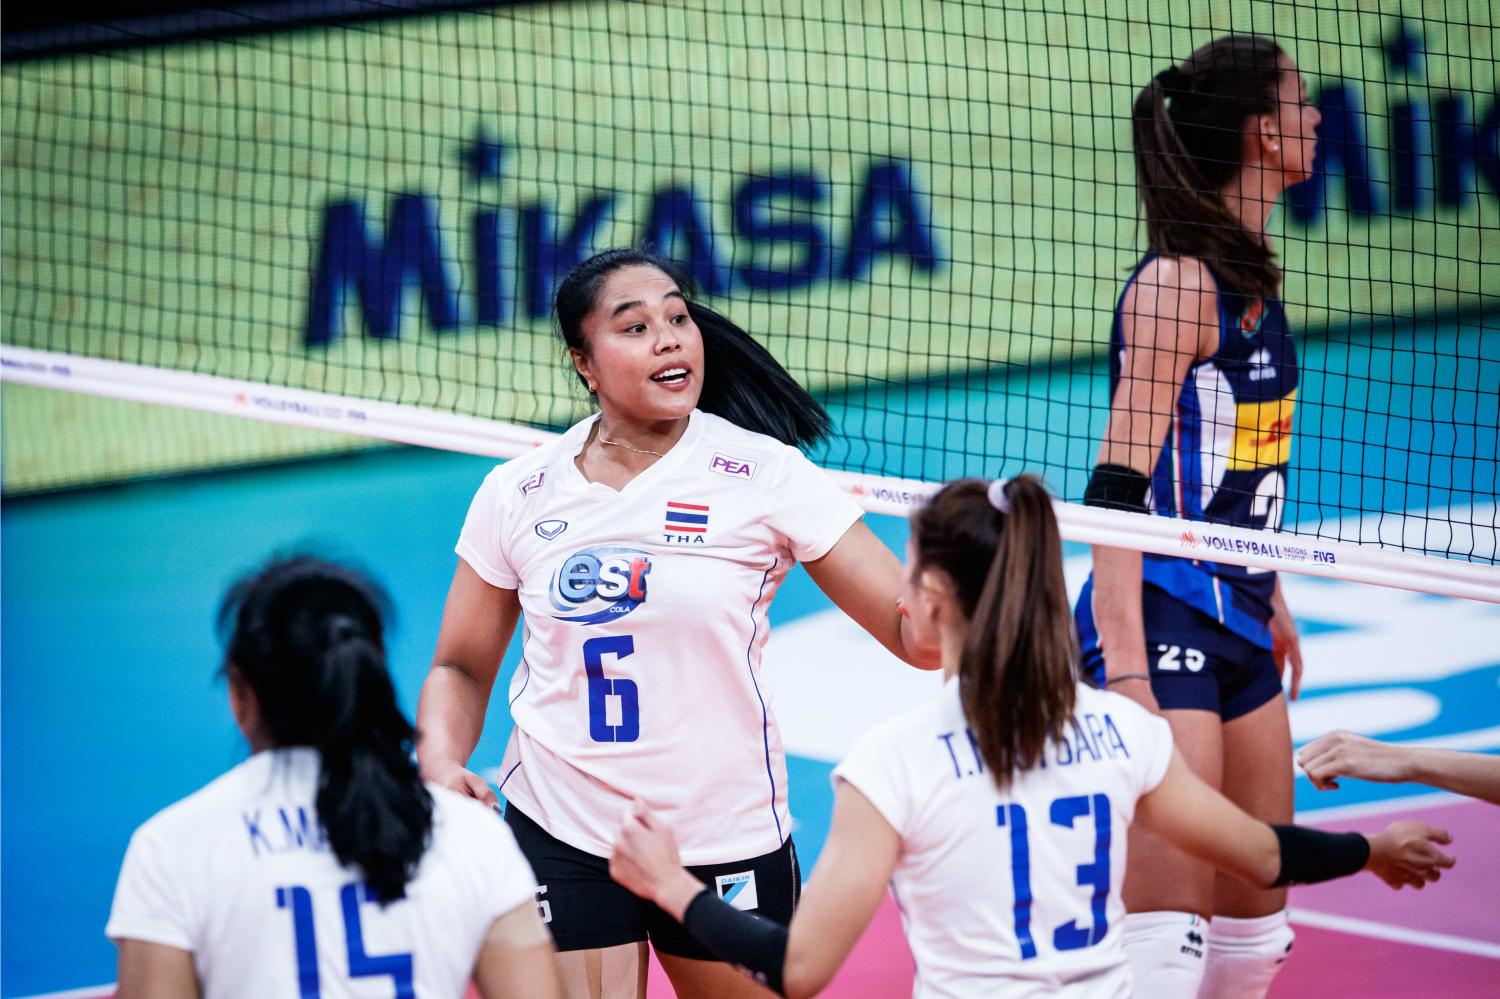 Thais finish bottom in Volleyball Nations League after Italy loss